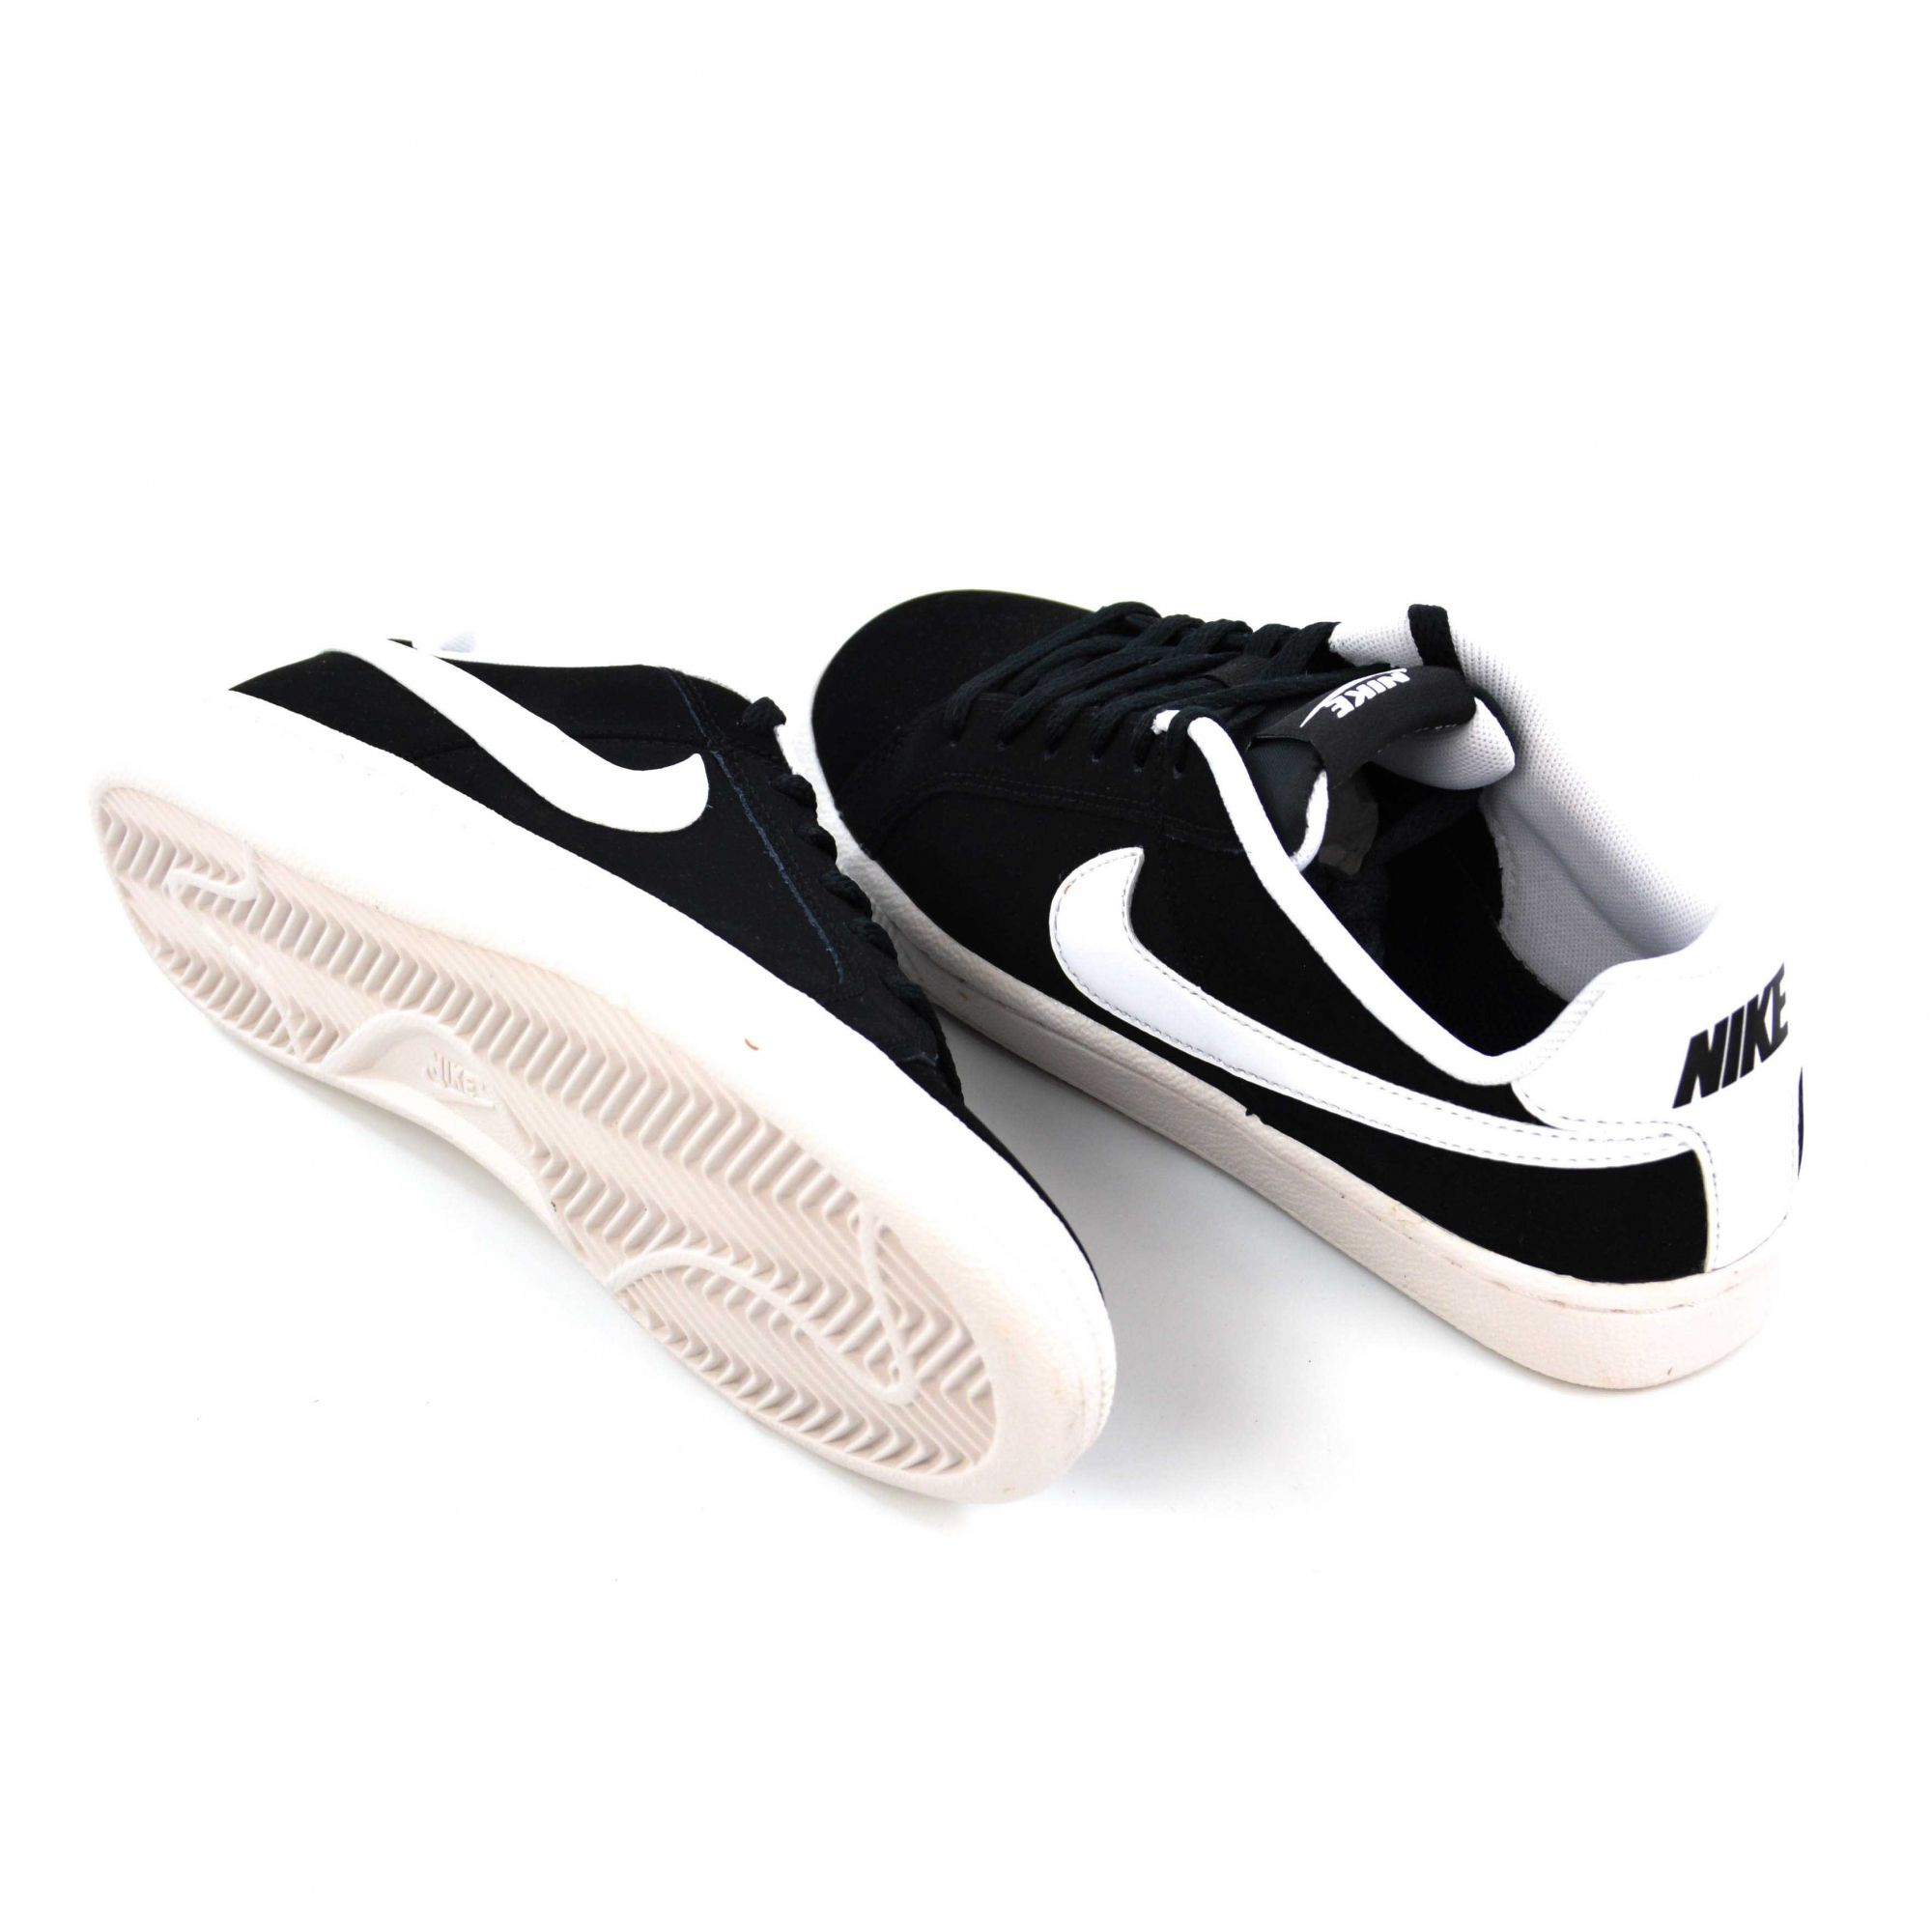 E> TENIS JUVENIL COURT ROYALE BLACK/WHITE NIKE 013537